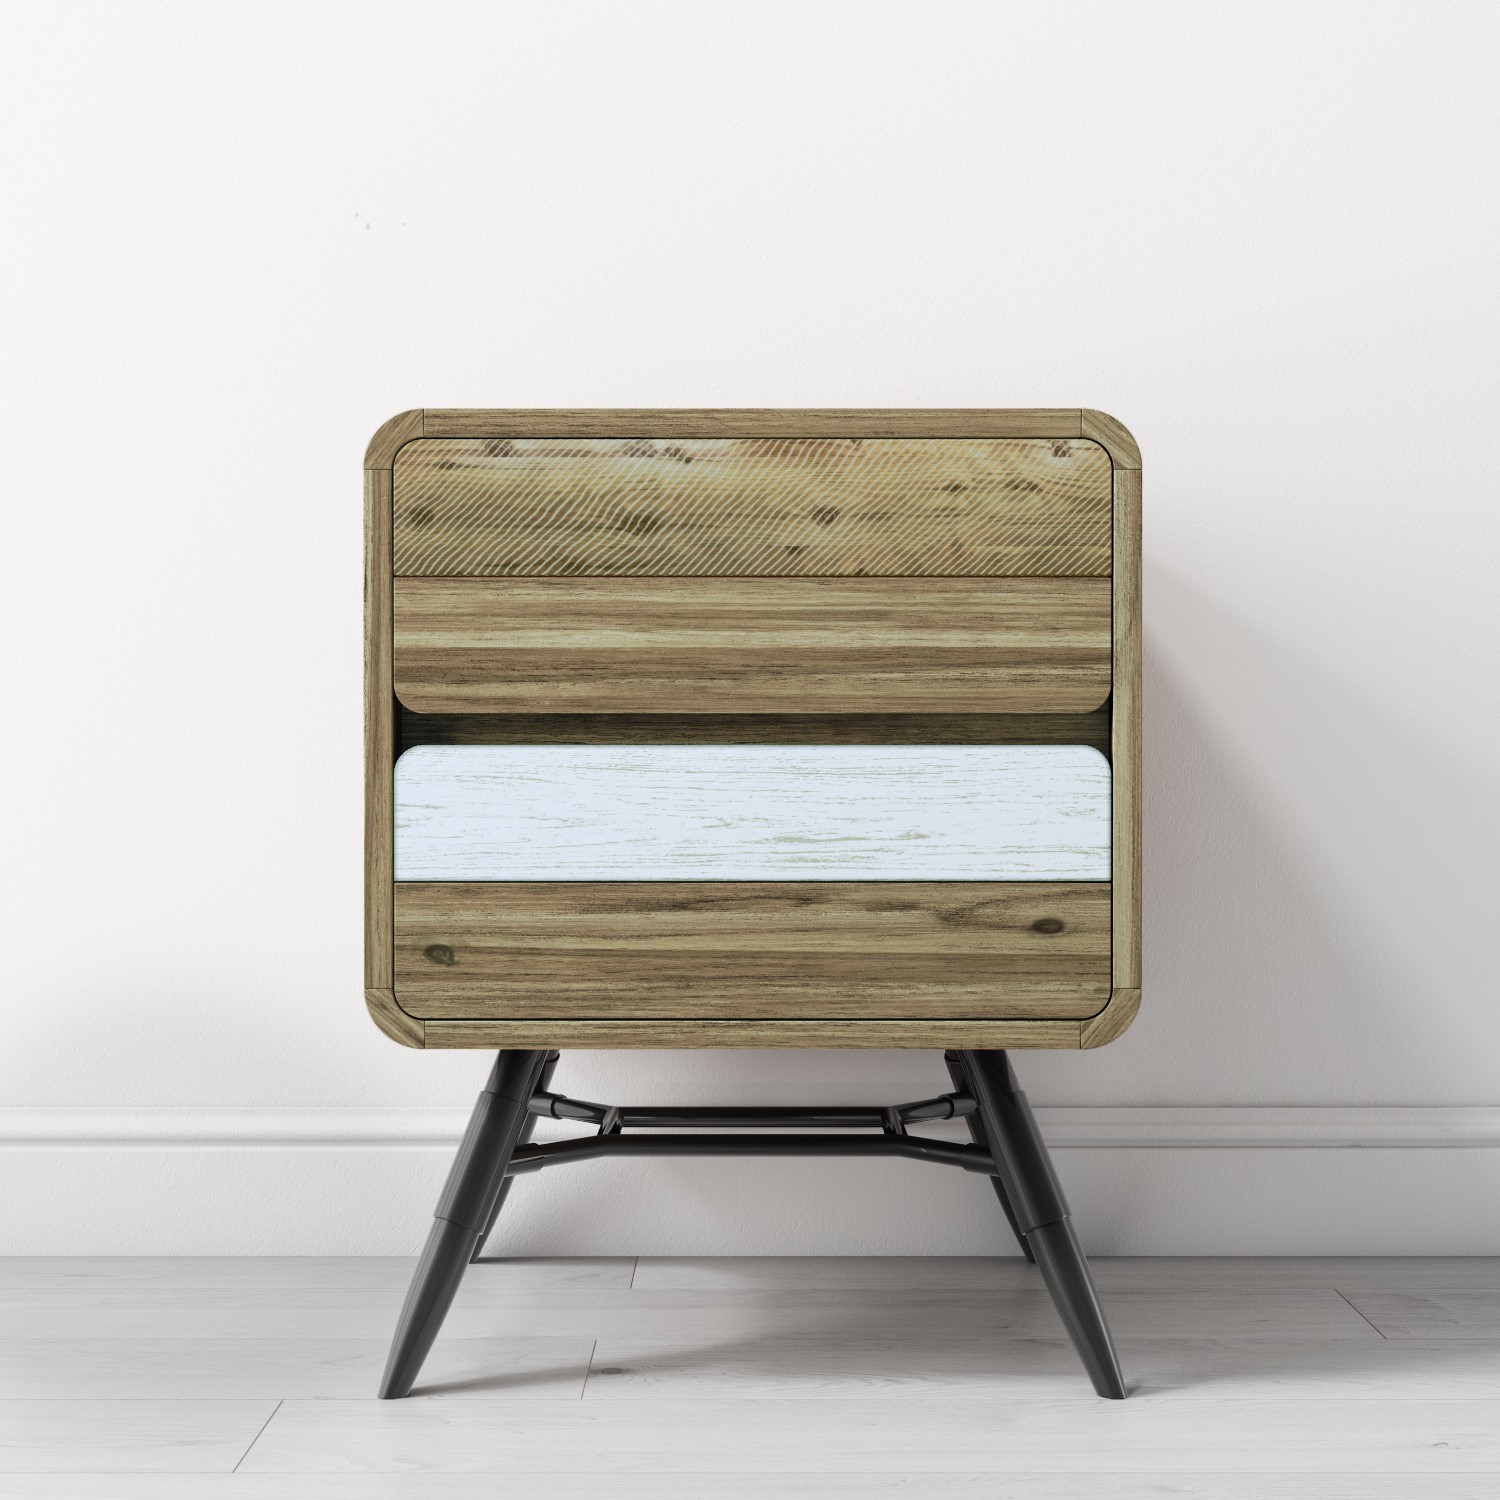 Details About Industrial Side Table With 2 Drawers In Reclaimed Wood With Metal Legs